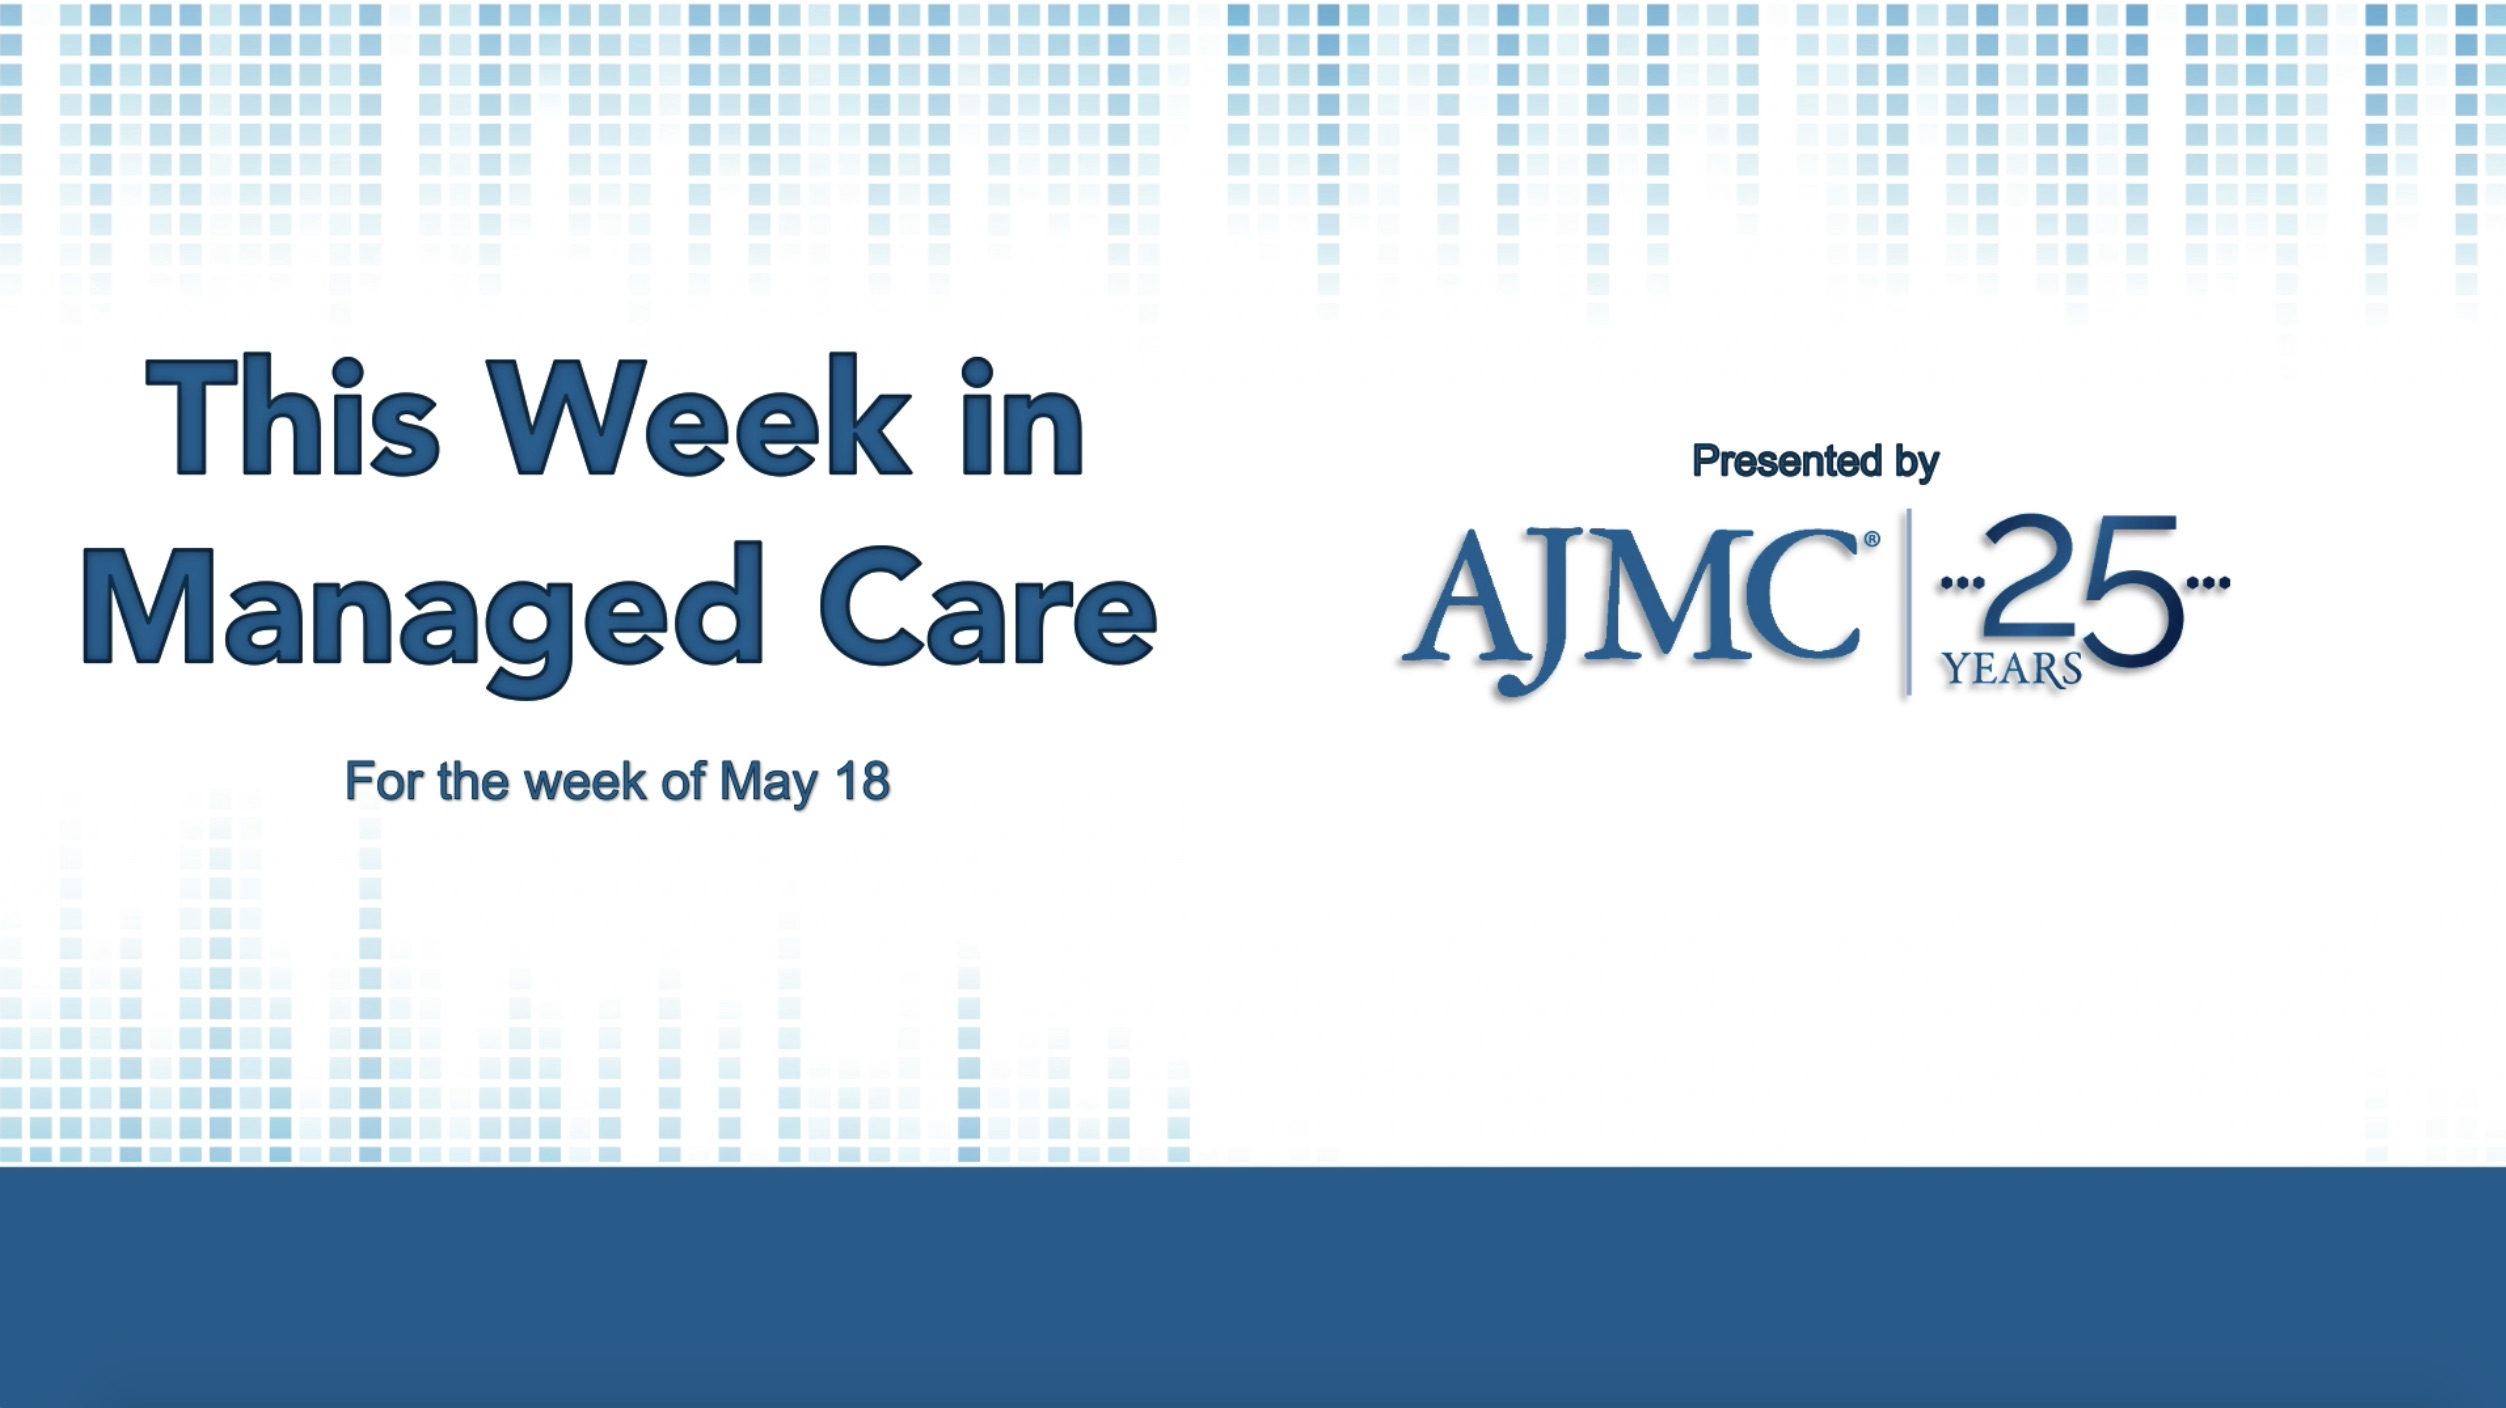 This Week in Managed Care: May 22, 2020